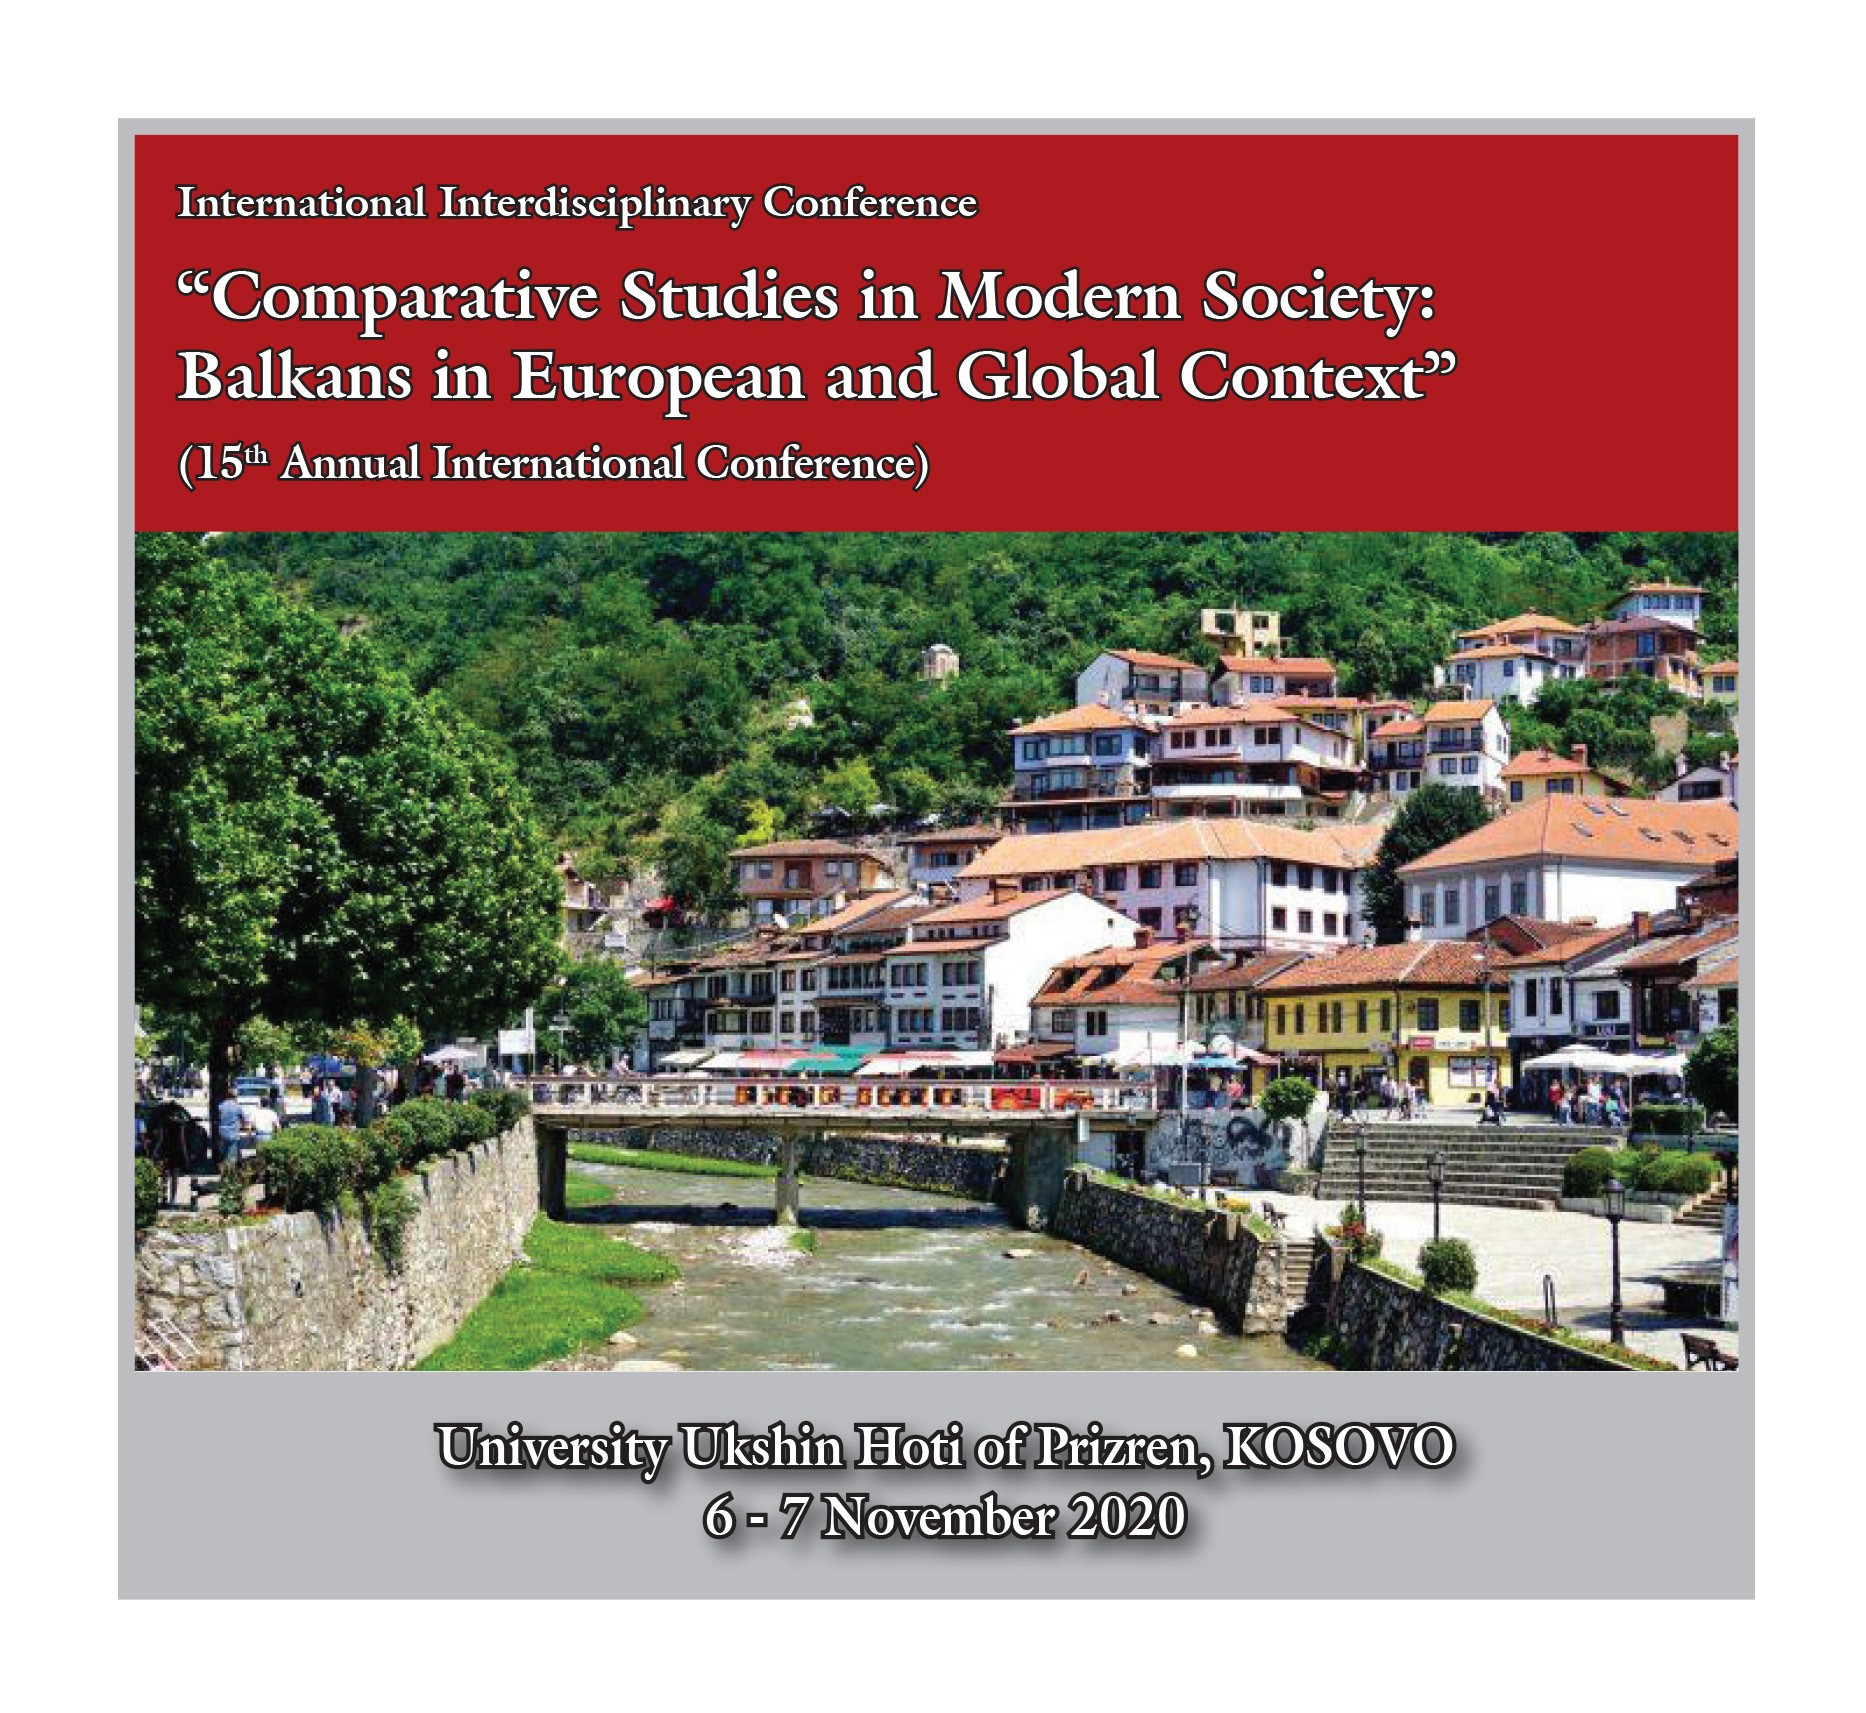 Call for Papers: International Interdisciplinary Conference